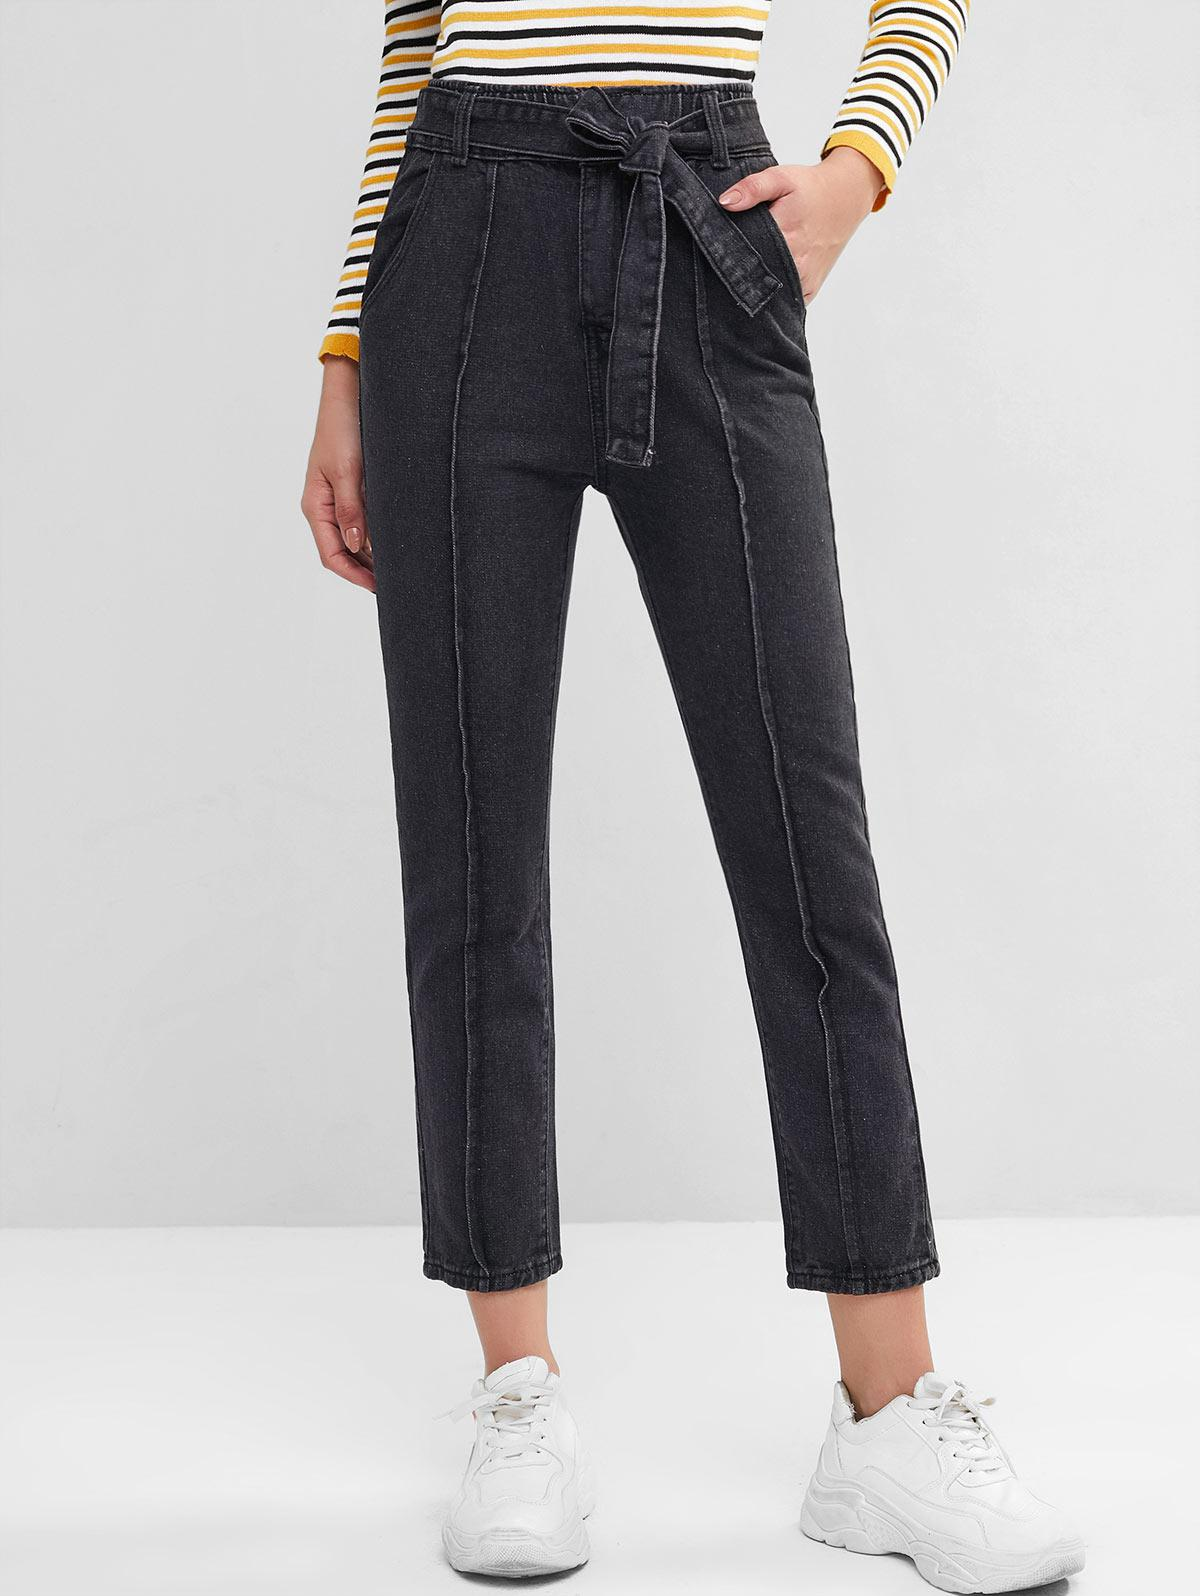 High Waisted Belted Pockets Straight Jeans, Black